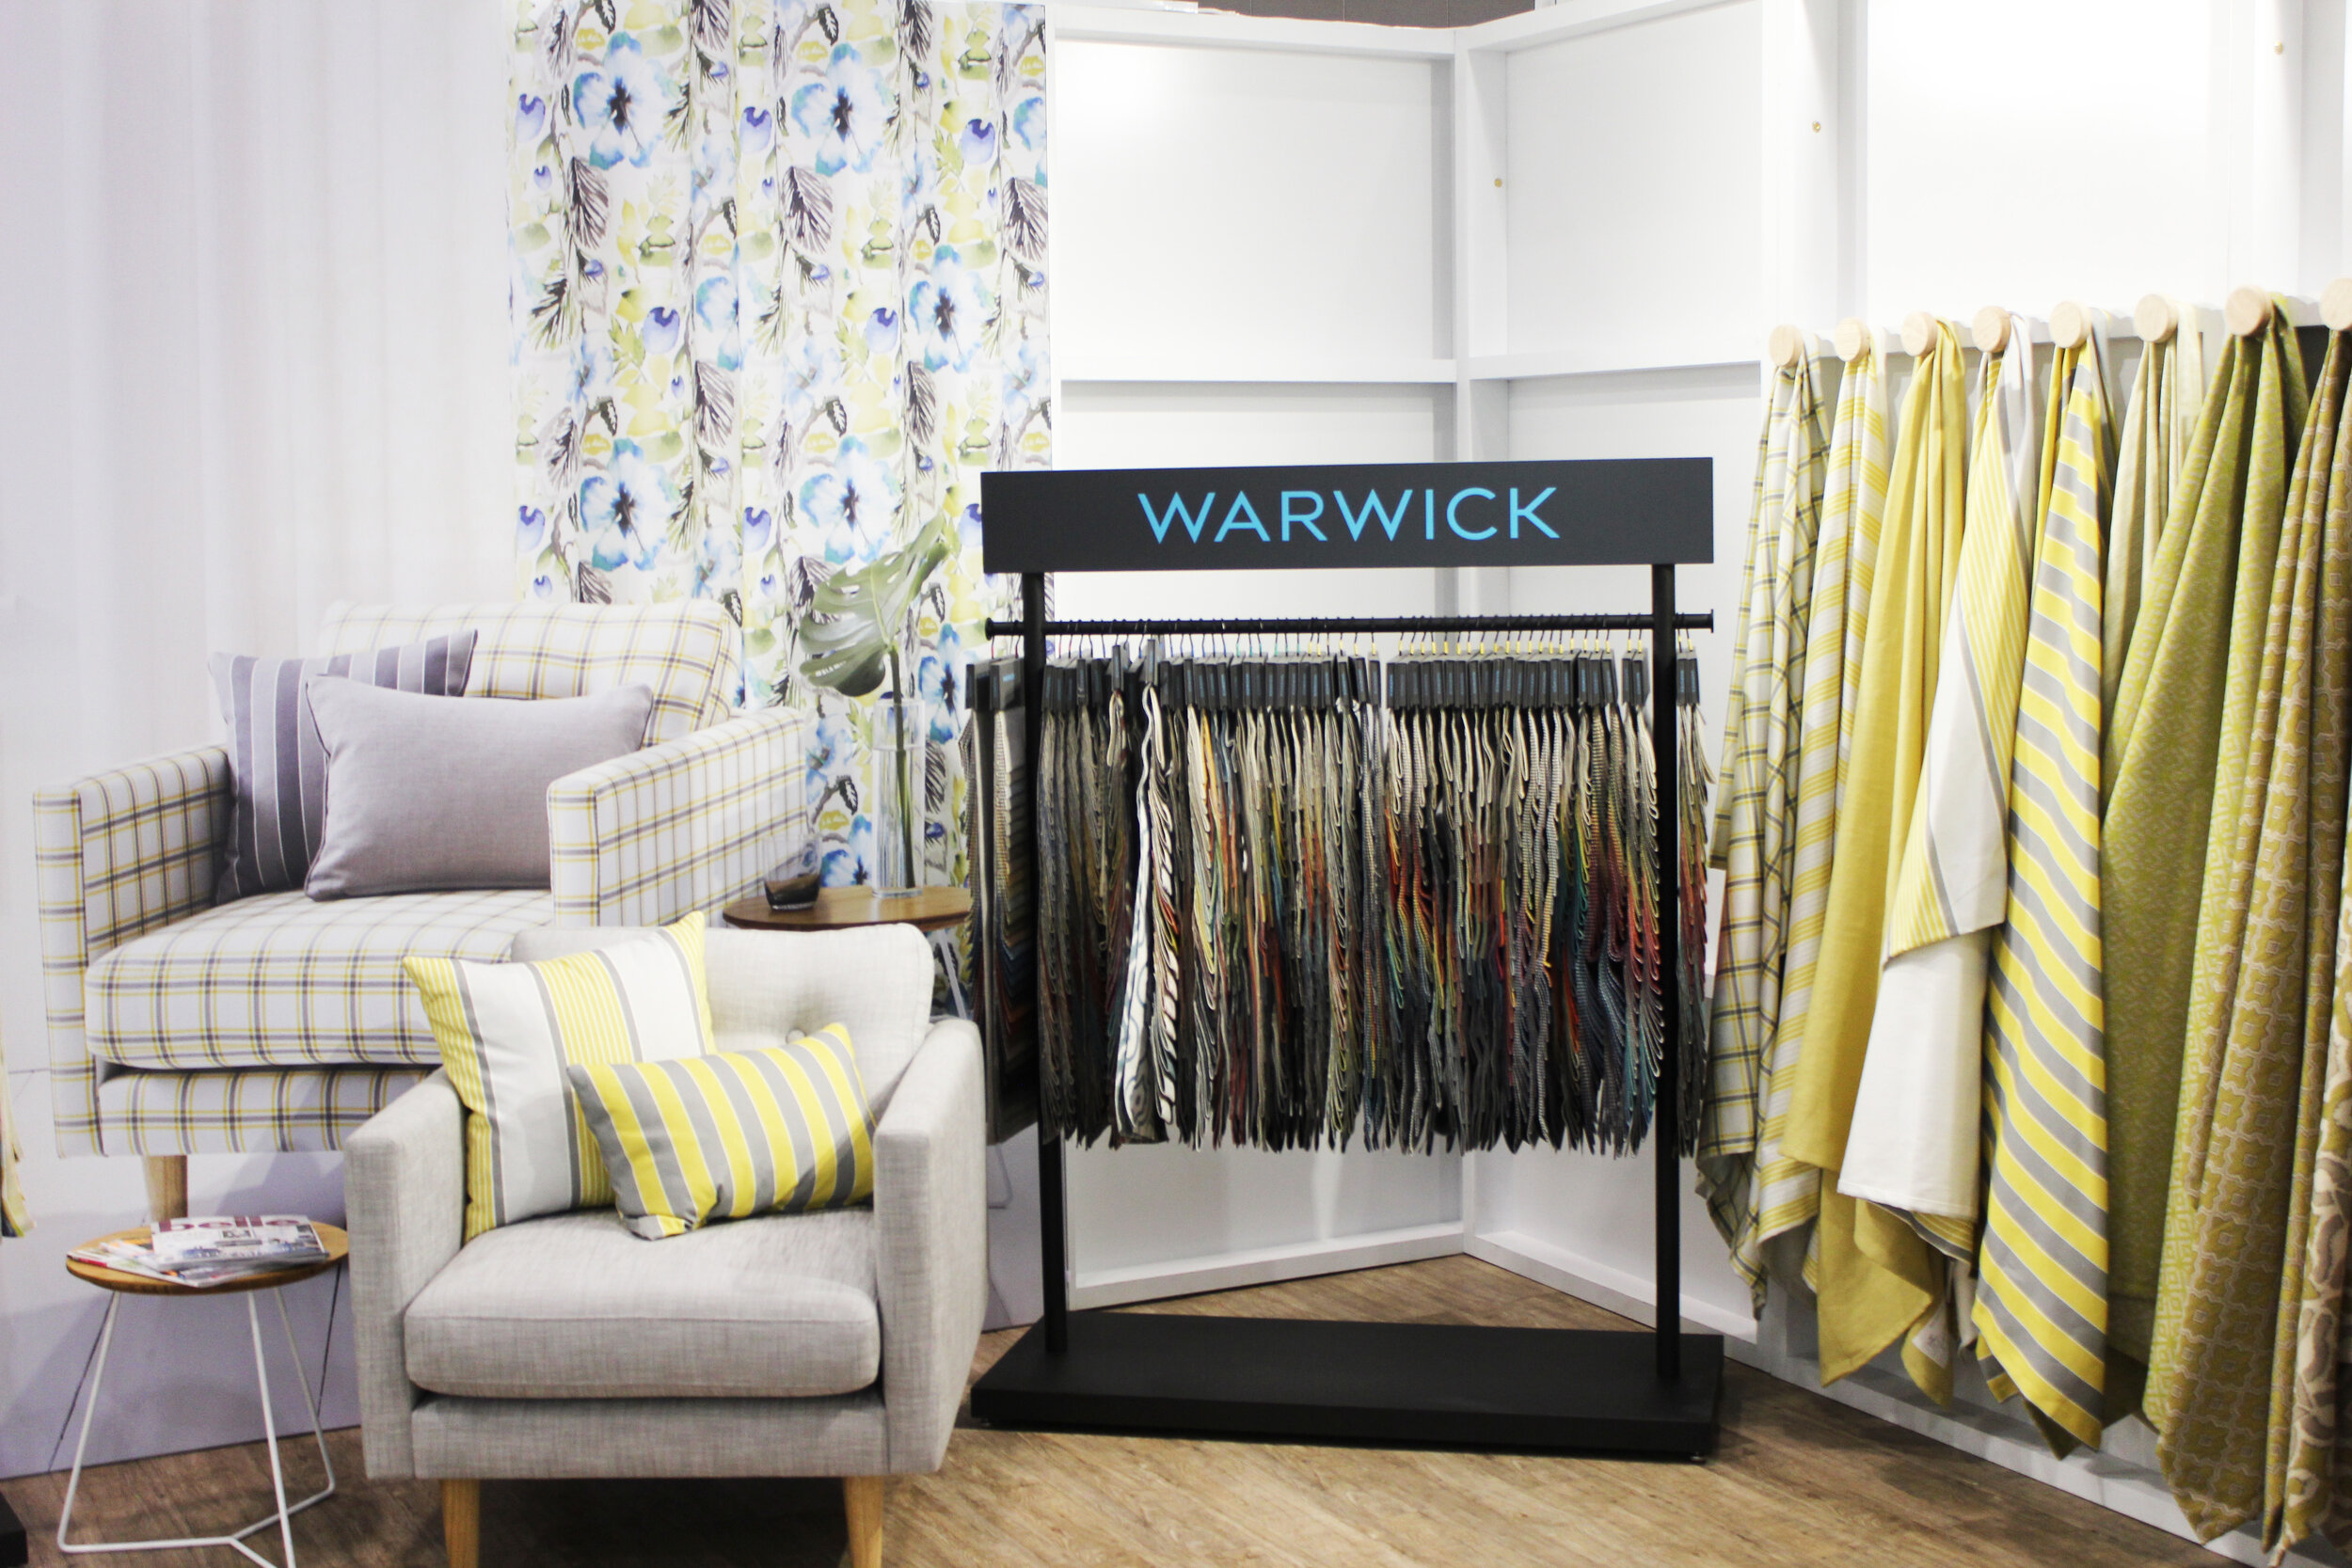 The Approach. - When working with Warwick, BEST. takes each project and sets out to push the boundaries in partnership. From racks and shelve systems, to a total redesign of their showroom spaces, our grasp of the specific needs has grown over the years, allowing us to offer a depth of service and understanding that is rare in design projects. With ever changing designs, evolving ranges and offerings, working with Warwick is a constant joy and  entertains our ability to create and recreate within an existing tone, look and theme.The extension of our design work into the Warwick brand and digital platforms has allowed us to take the knowledge and experience and create the right words, looks and ideas to bring their existing brand to life digitally.